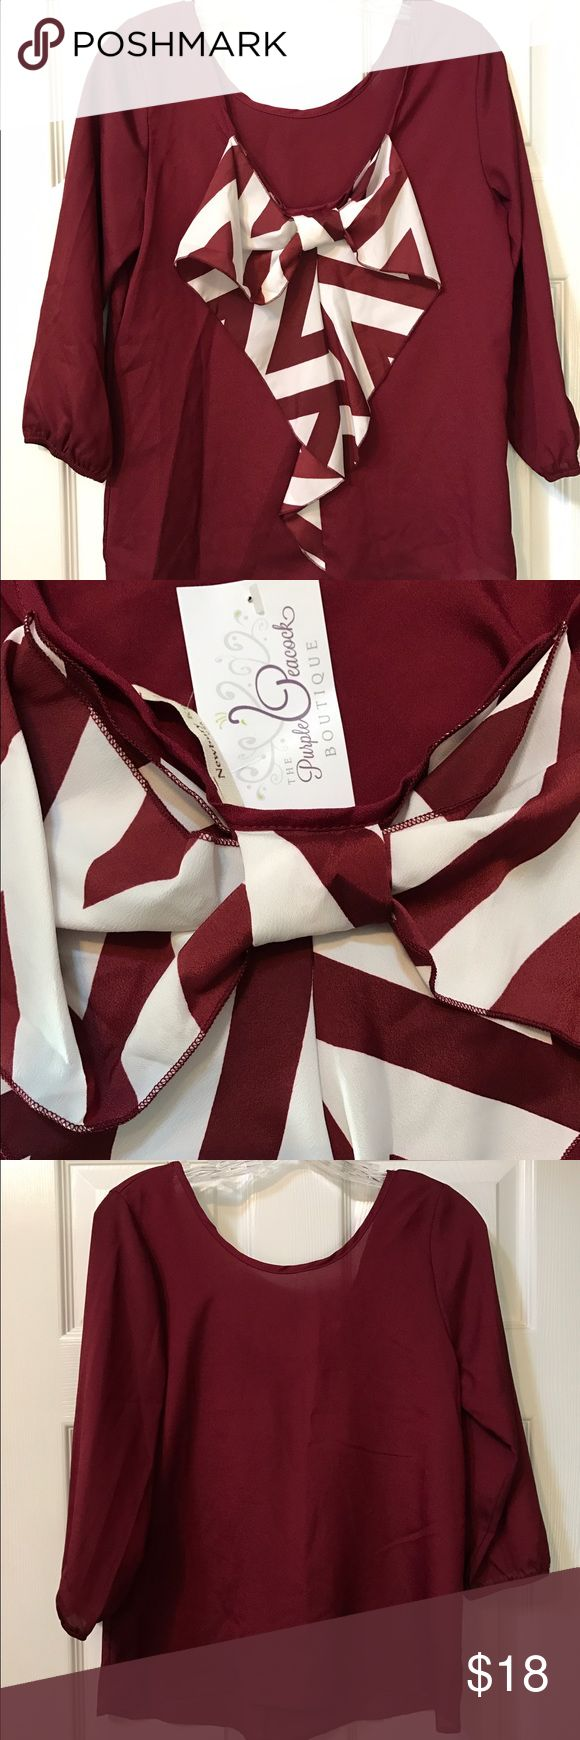 Bow back boutique blouse Perfect for gameday! Burgundy and white chevron bow on the back, quarter length sleeves boutique blouse. Never worn Tops Blouses